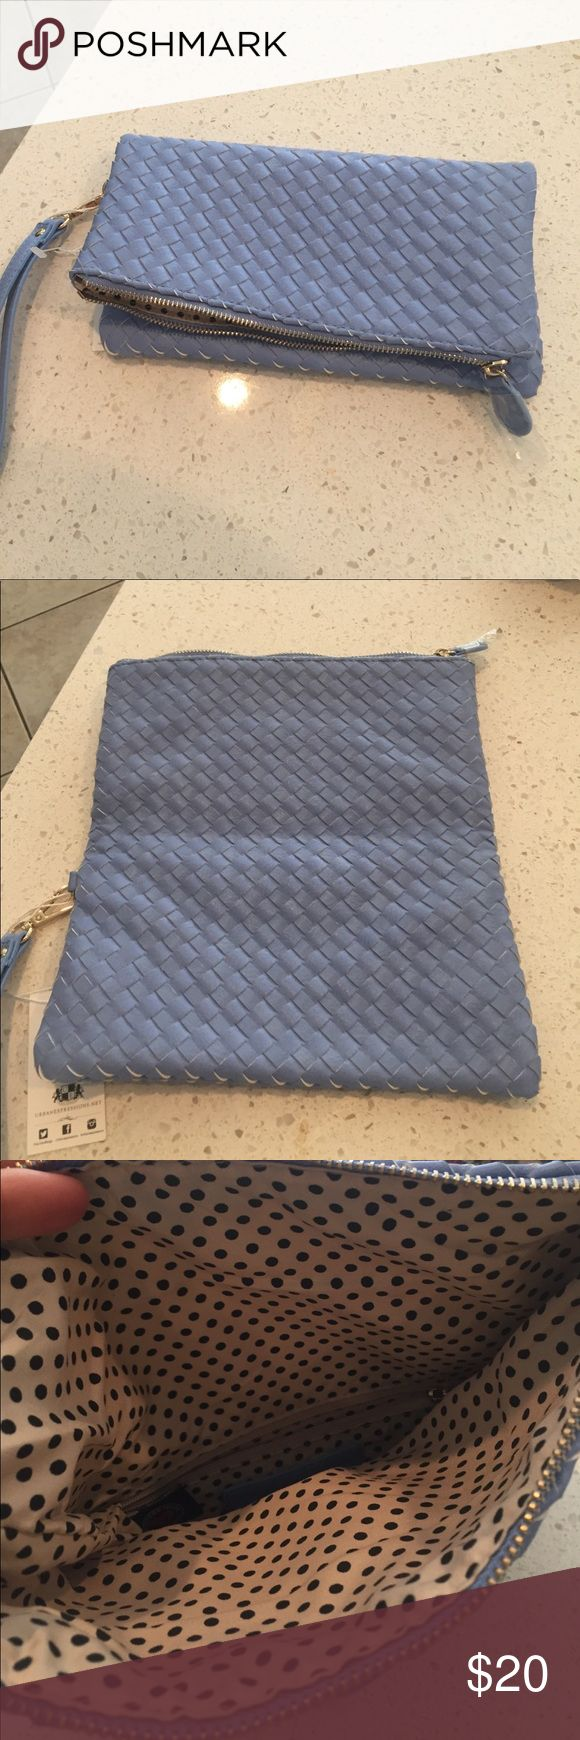 Light blue clutch bag Holds together with magnet .. light blue leather. Brand new. Detachable wristlet.. never been used.. tags attached Bags Clutches & Wristlets